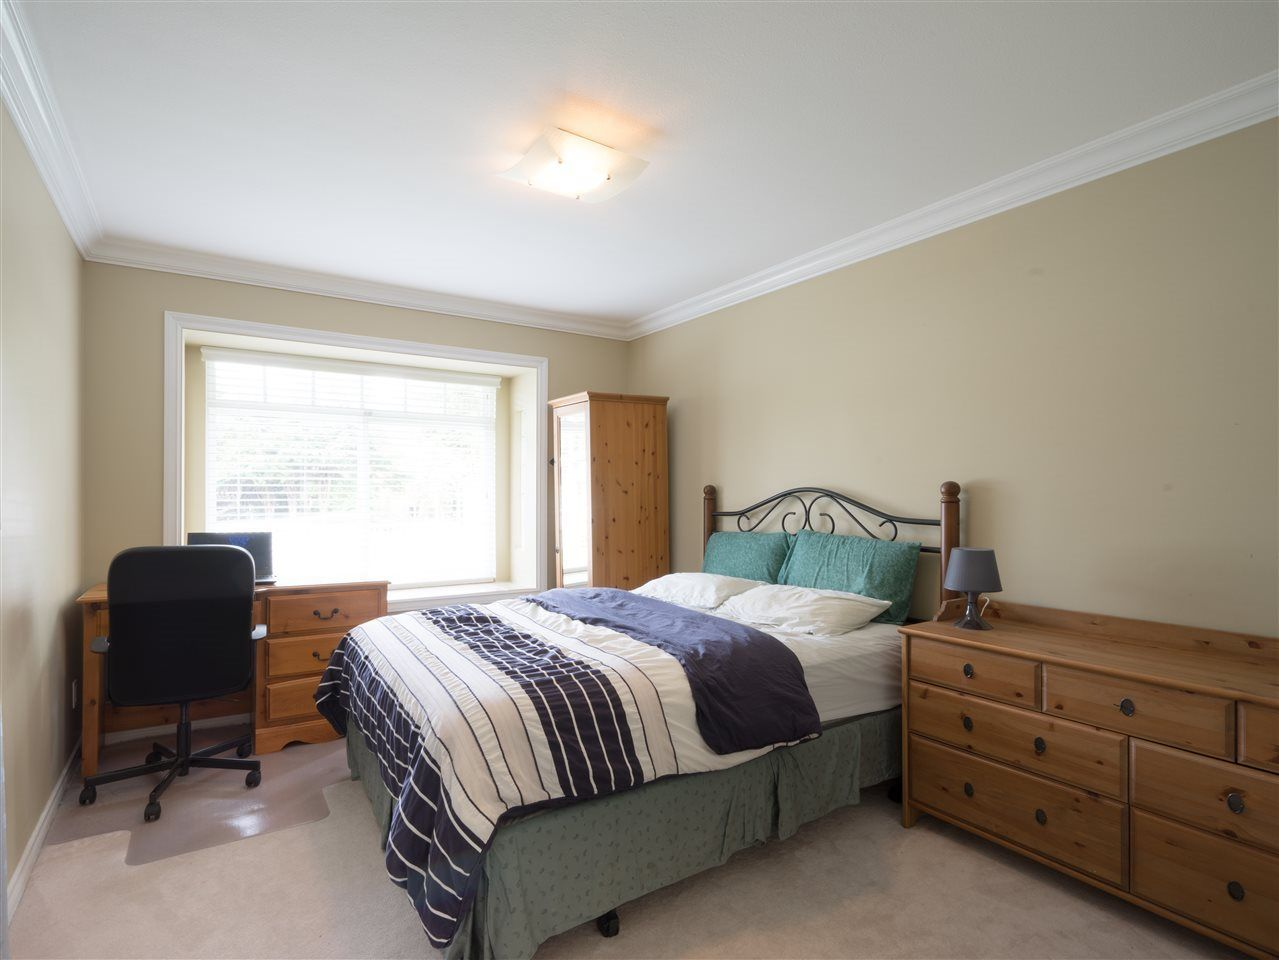 Photo 13: Photos: 2052 WESTVIEW Drive in North Vancouver: Central Lonsdale House for sale : MLS®# R2530544